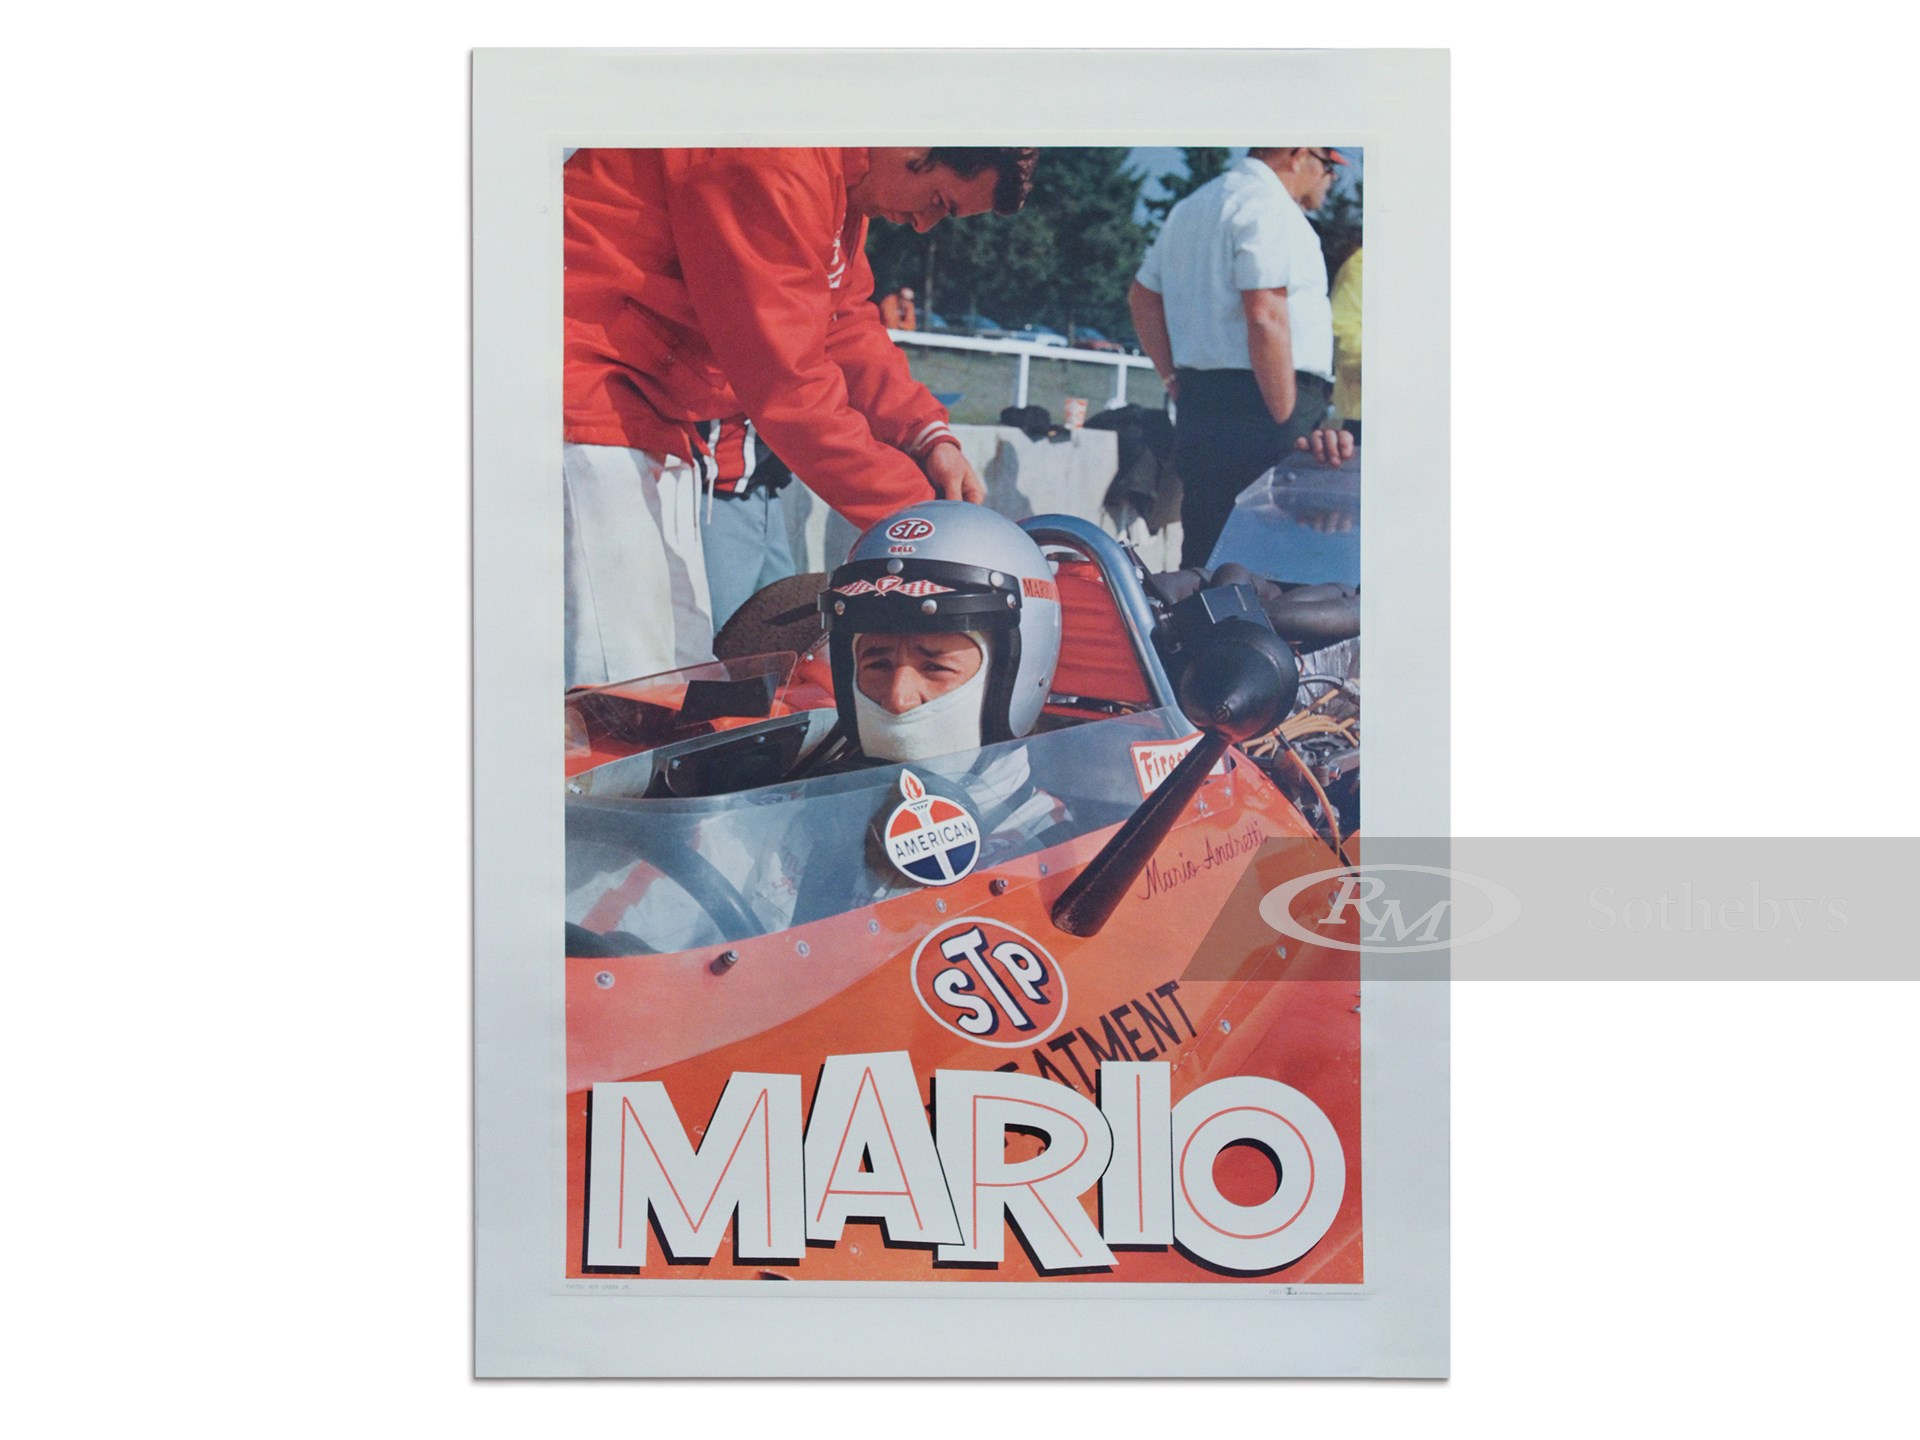 """Mario"" Early Portrait Poster, ca. 1970s -"